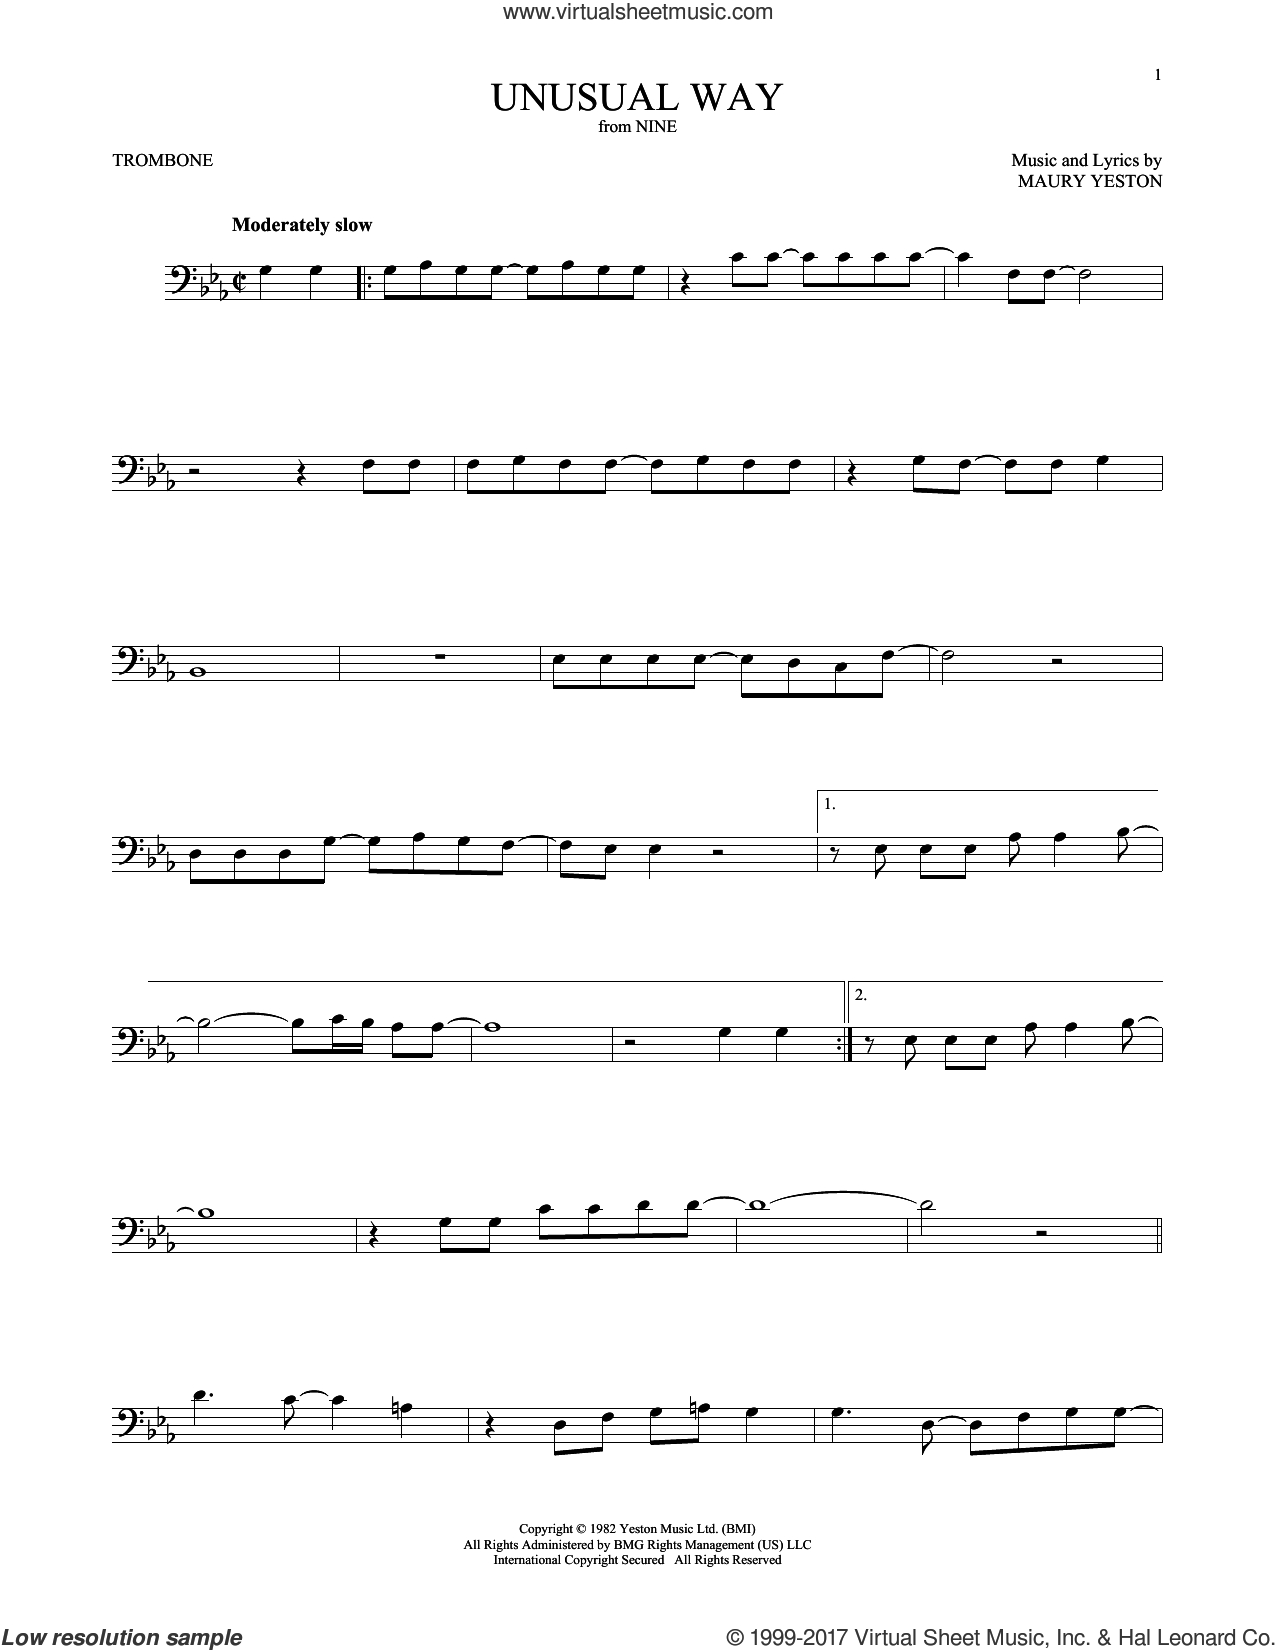 Unusual Way sheet music for trombone solo by Maury Yeston and Linda Eder. Score Image Preview.